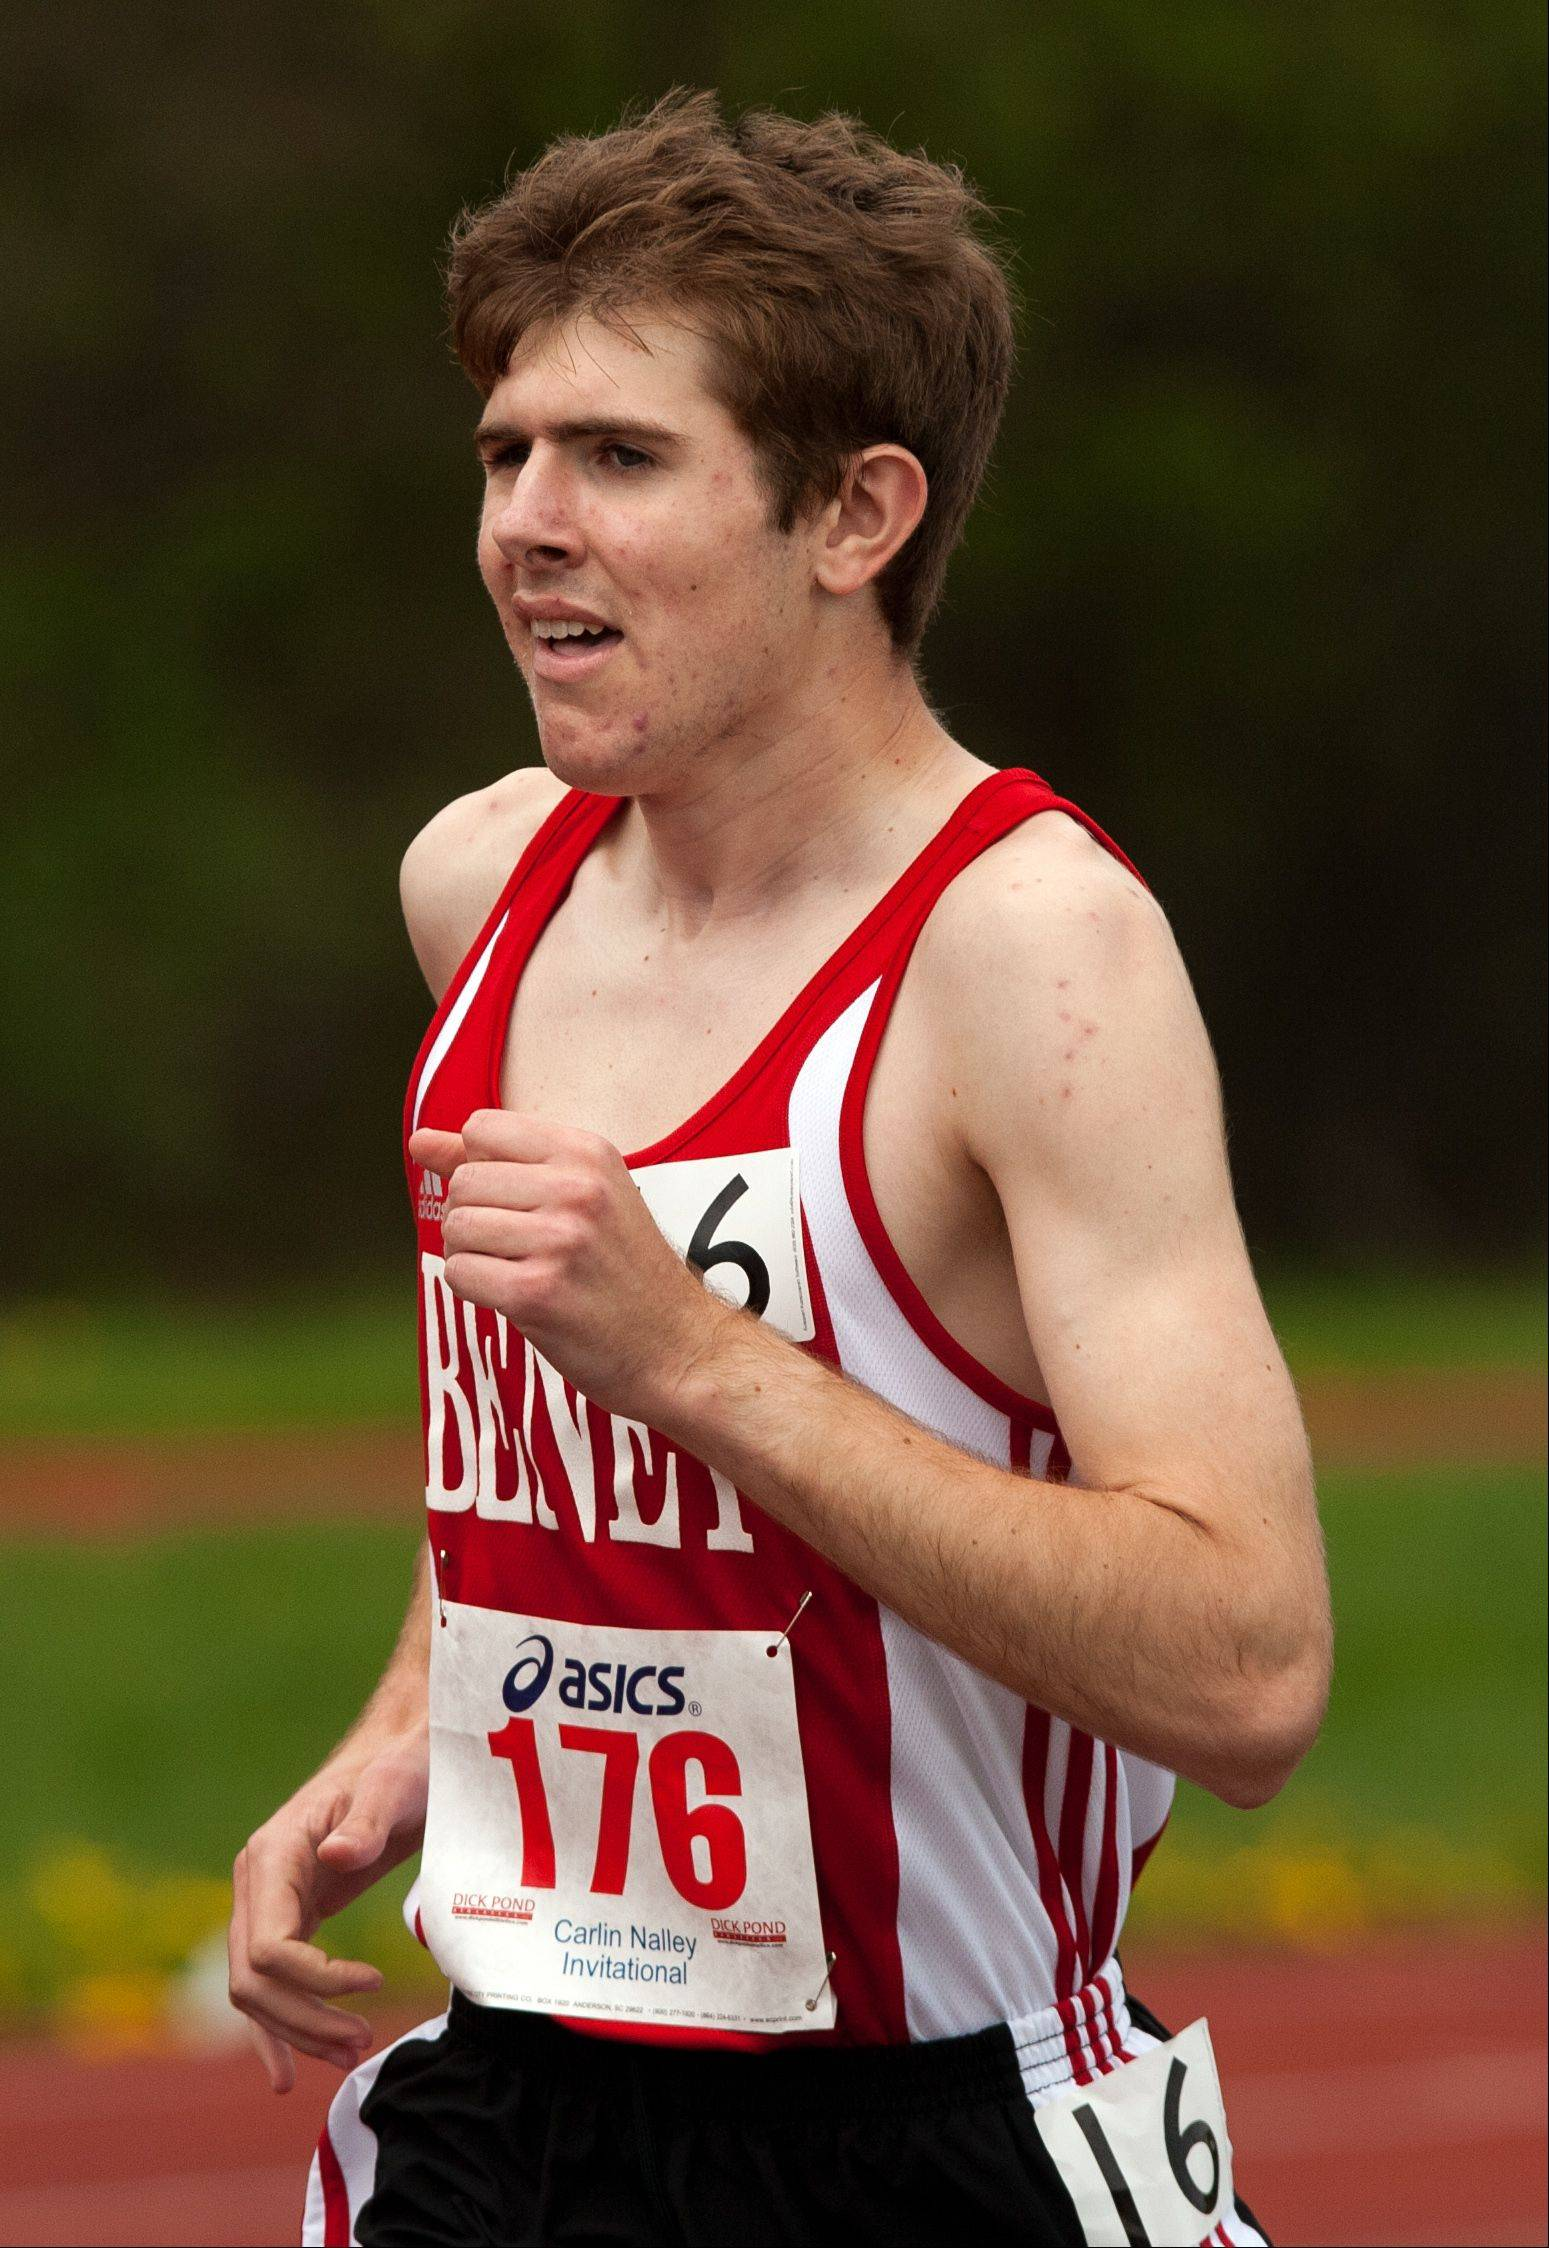 Benet's John Stoppelman runs the 3200 meter run during the 46th annual Carlin Nalley Boys� Track Invitational at Benedictine University in Lisle.